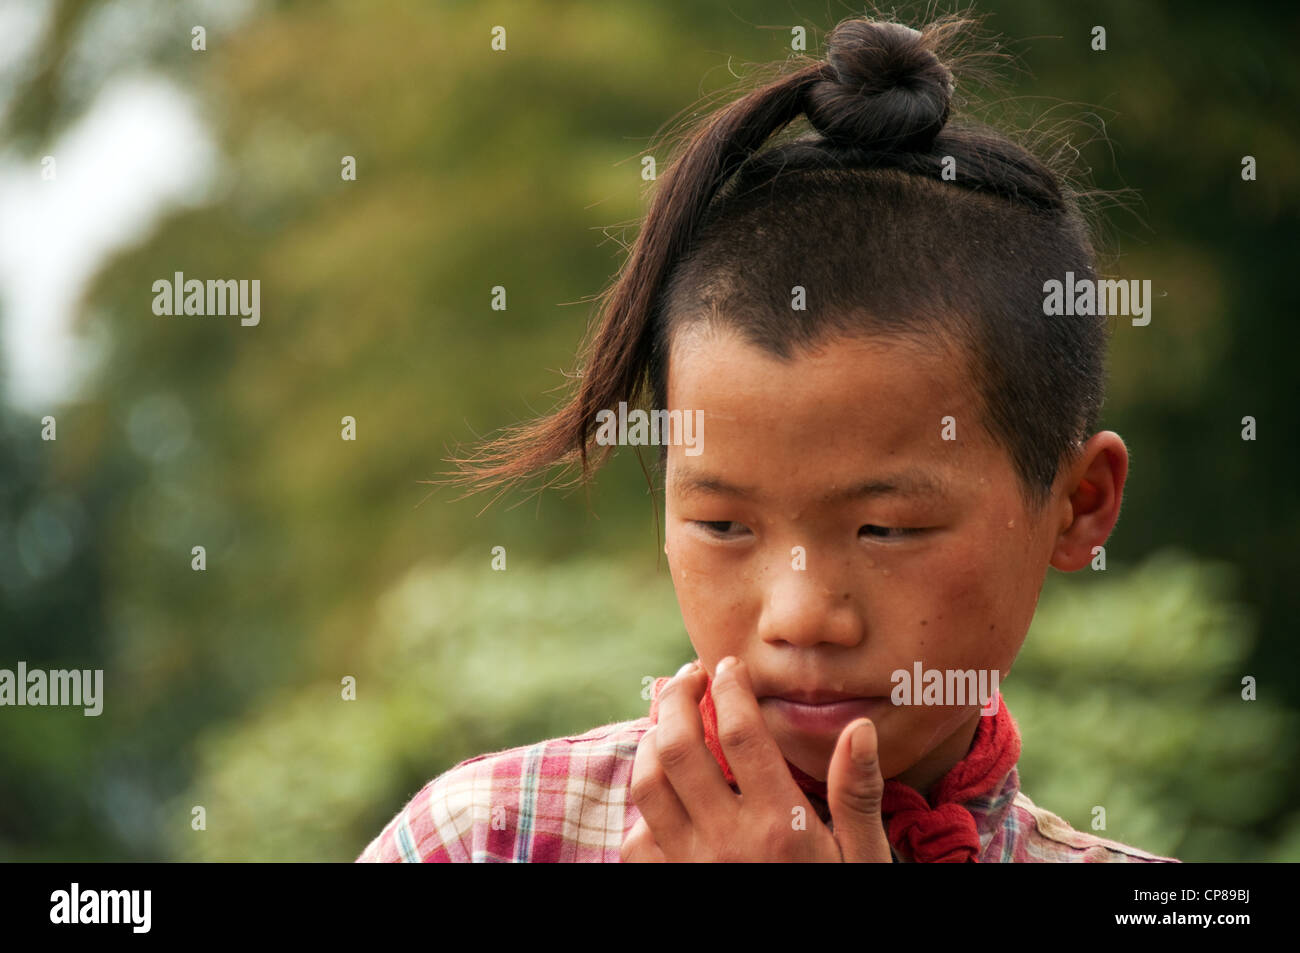 Sweating young Basha Miao (Gun Men) boy with traditional hairstyle and red neckerchief, Southern China - Stock Image